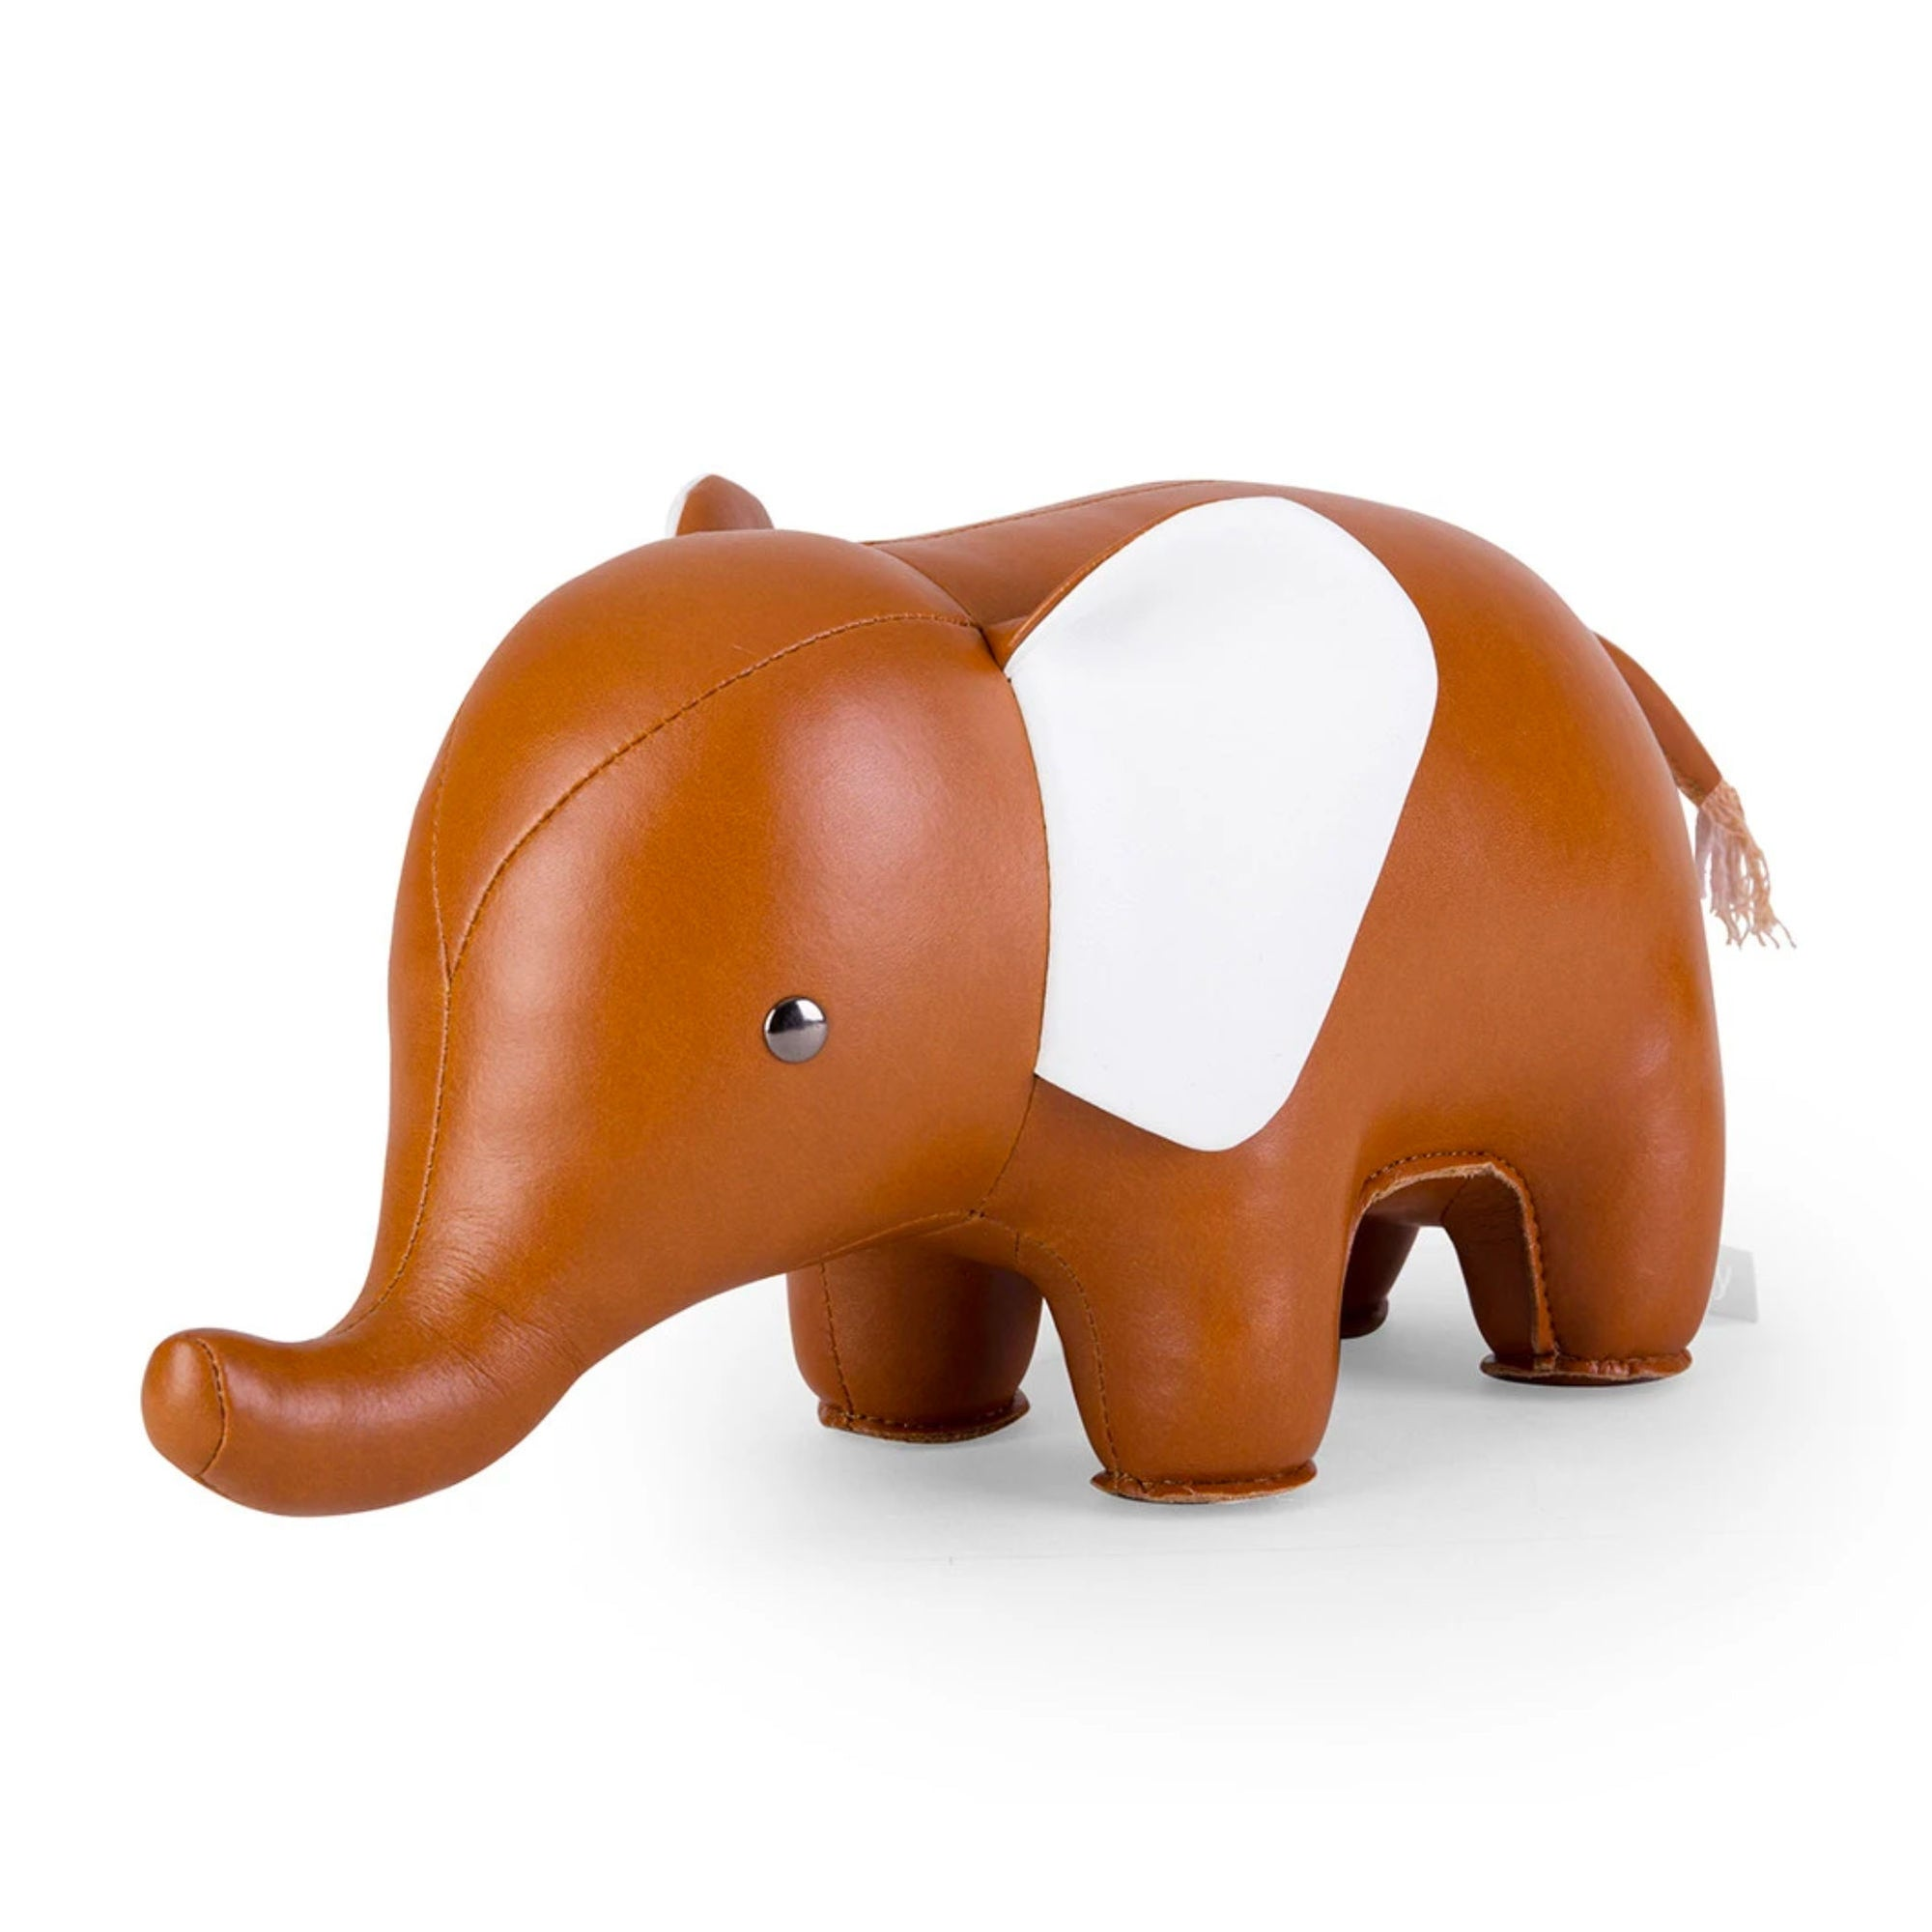 Zuny Classic Elephant paperweight